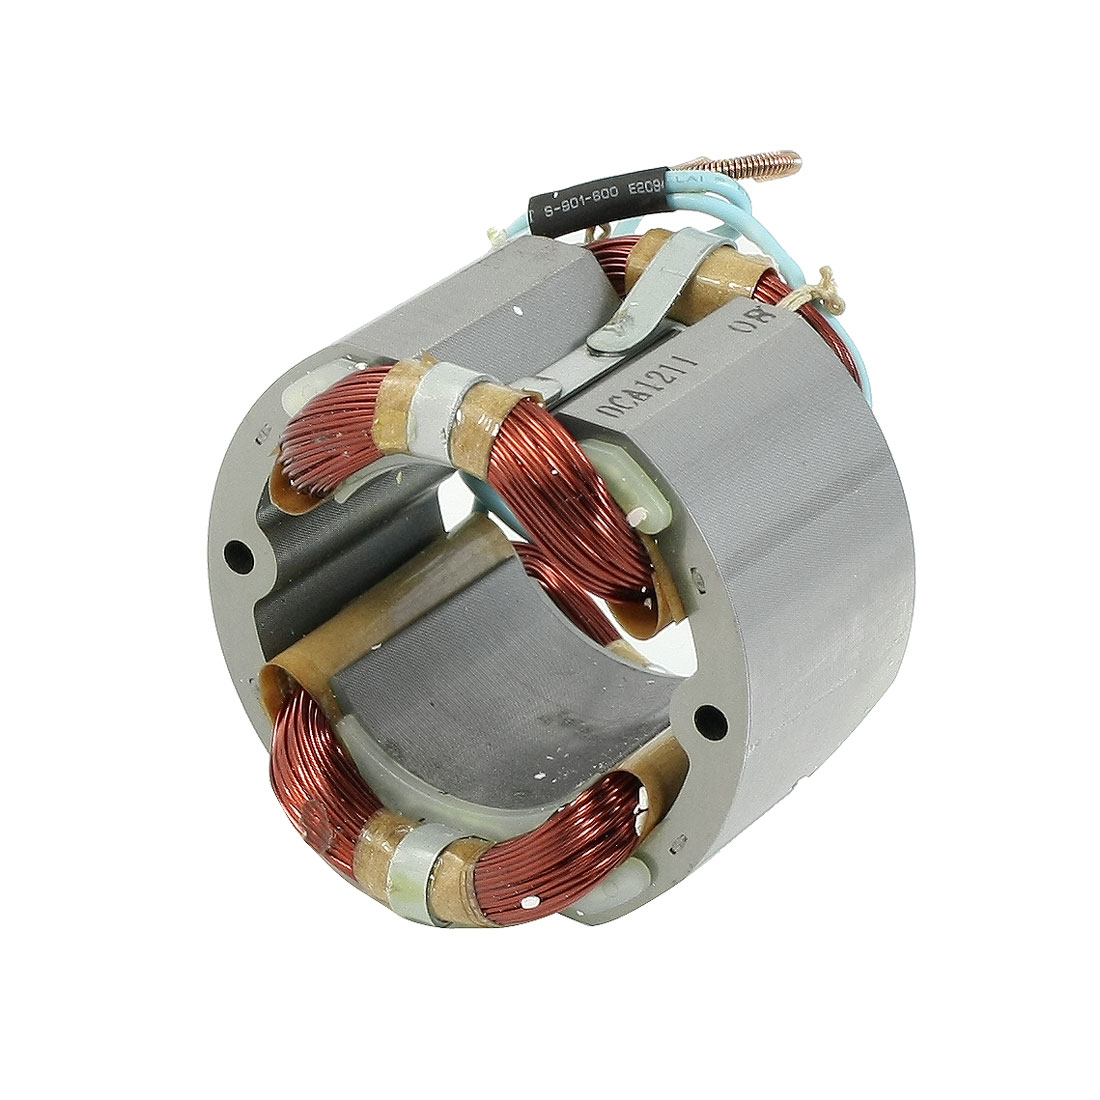 AC220V 54mm Diameter Core 4 Cables Electric Motor Stator for Hitachi PH65SC